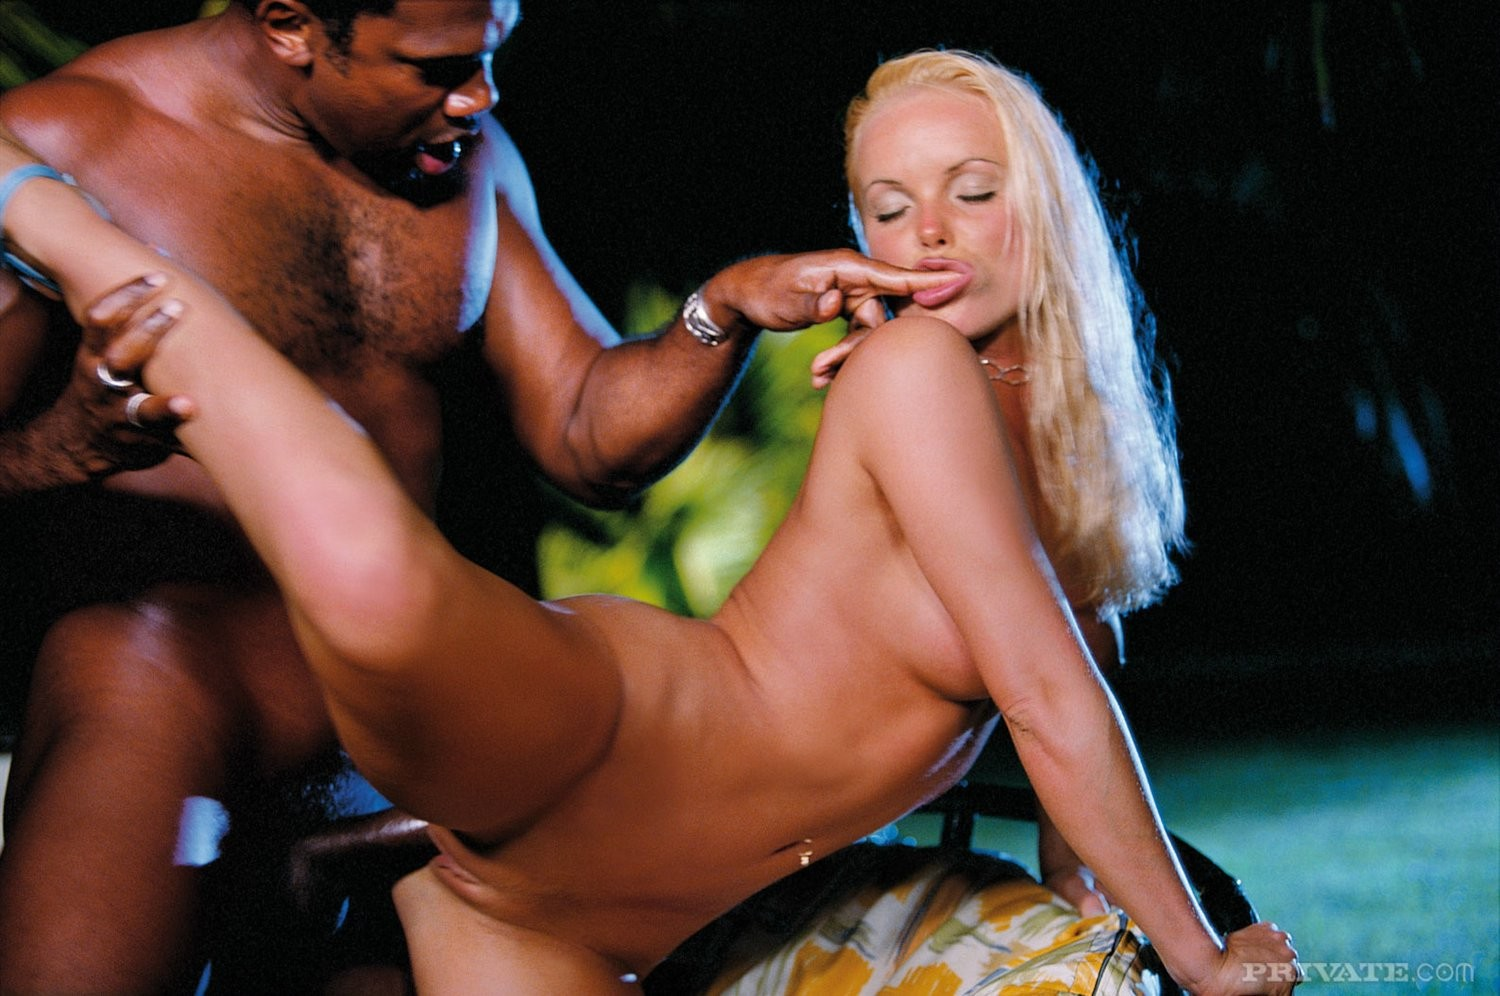 Fairy-haired bombshell silvia saint bonked by black in enter gate